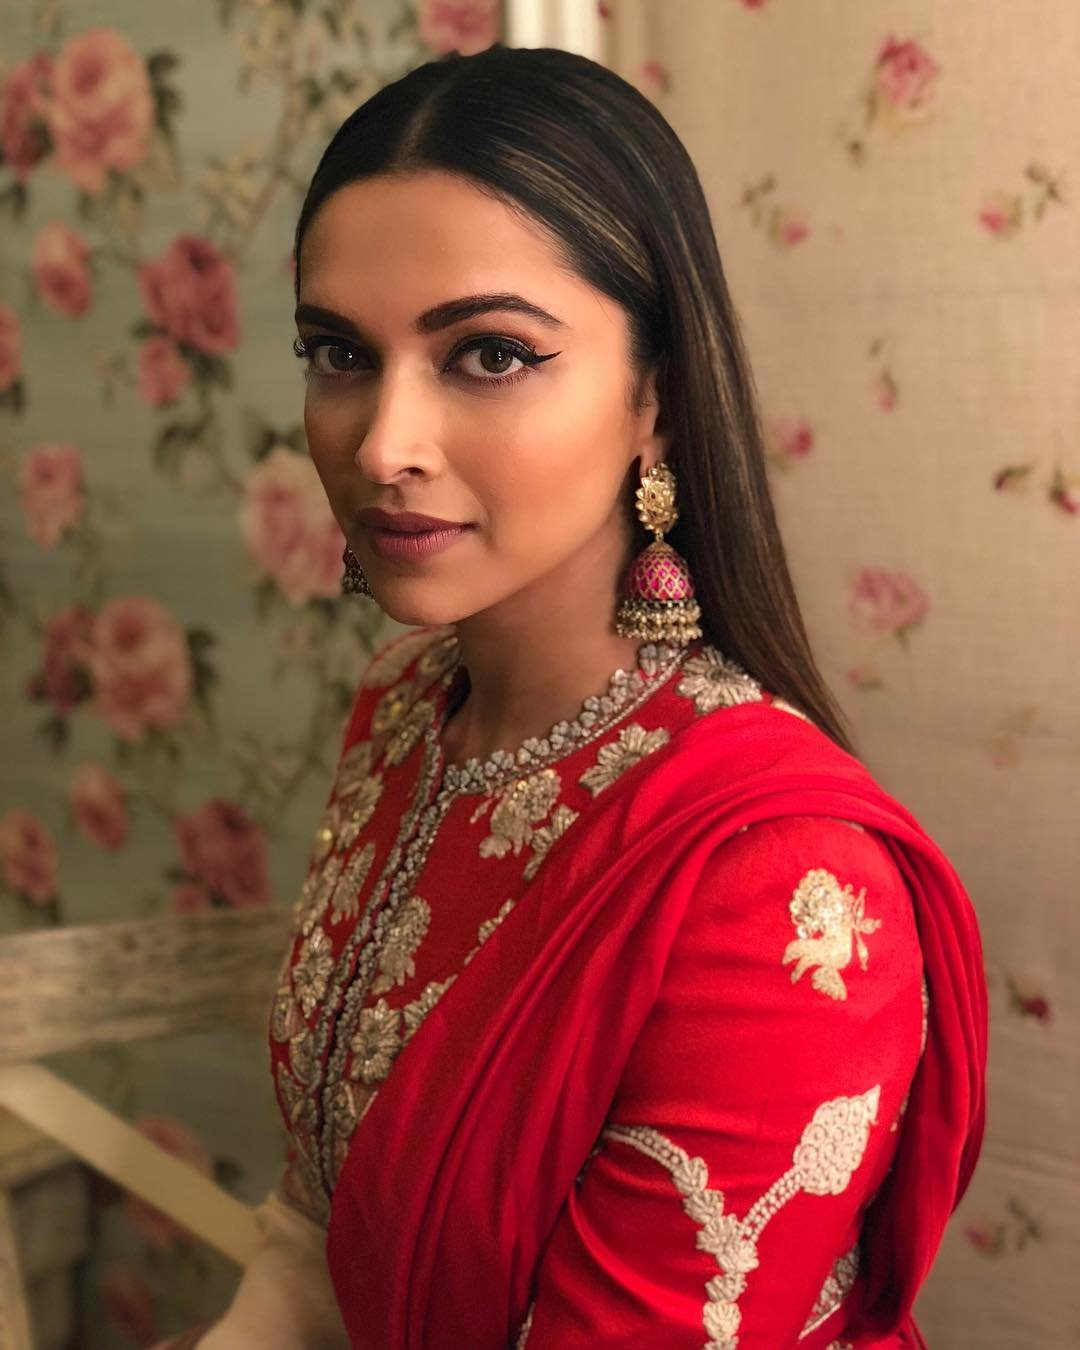 2017 Was Truly Deepika Padukone's Year of Becoming a Style Icon in Her Own Right